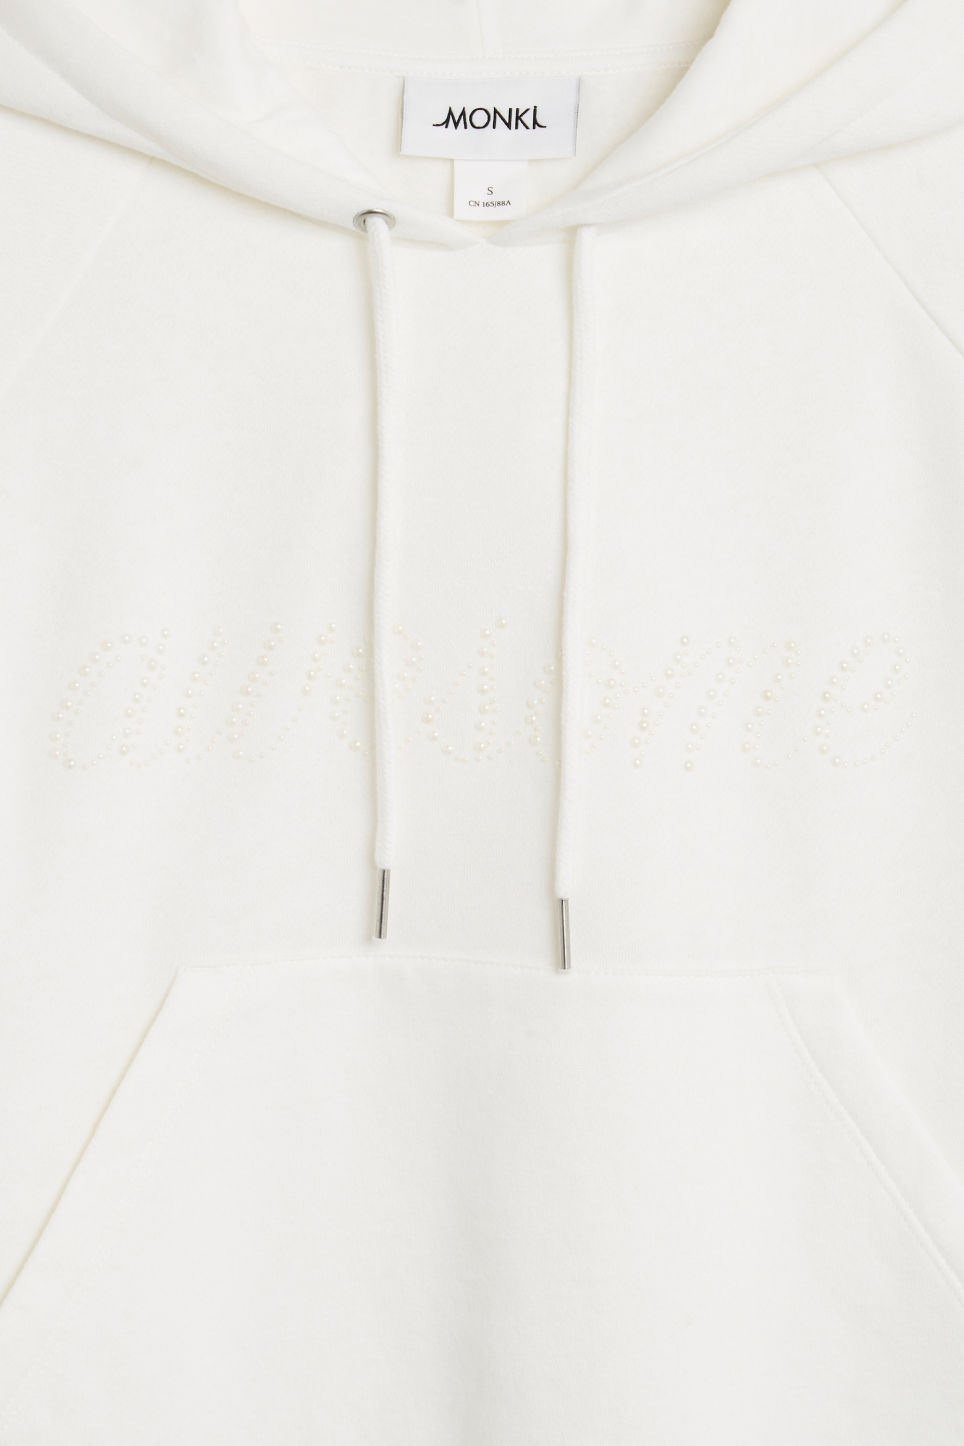 Detailed image of Monki cropped hoodie in white